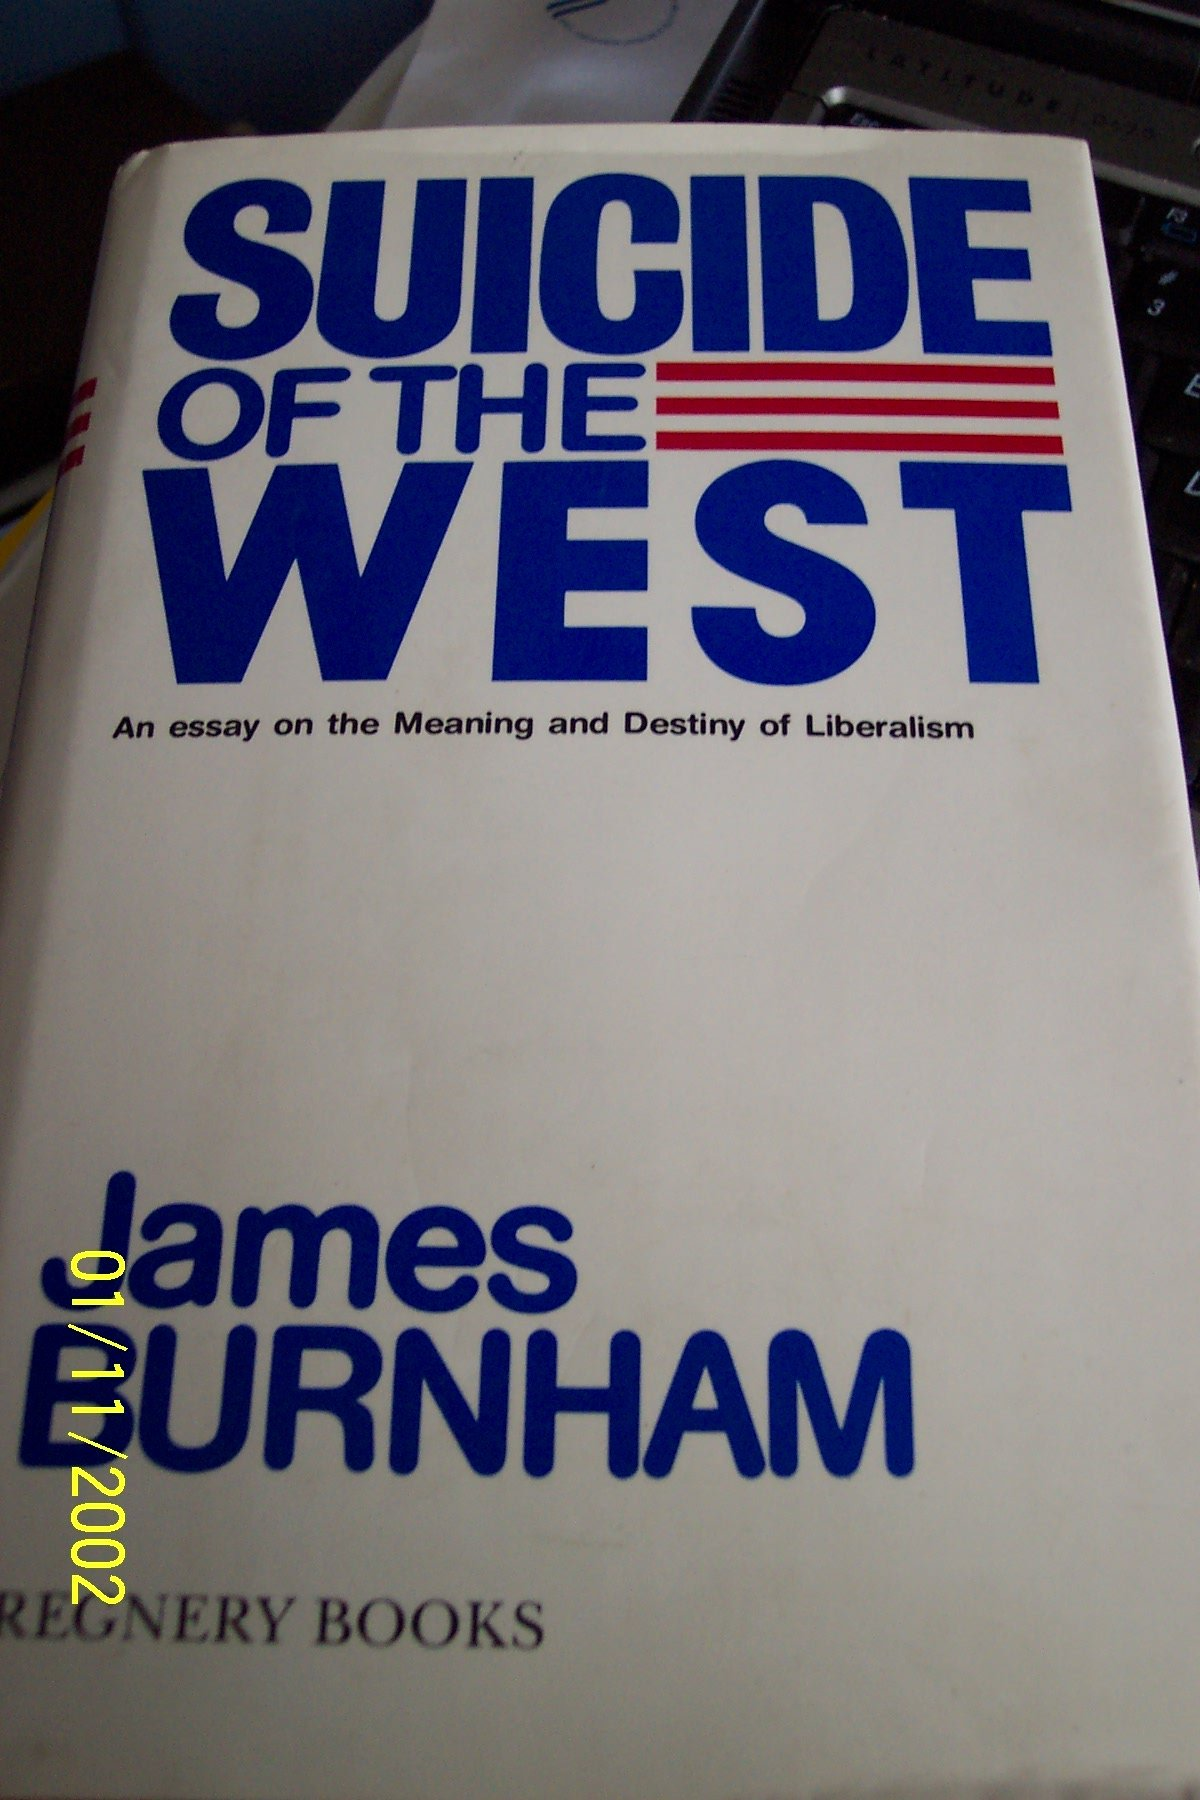 Suicide of the West: An Essay on the Meaning and Destiny of Liberalism: Amazon.es: James Burnham: Libros